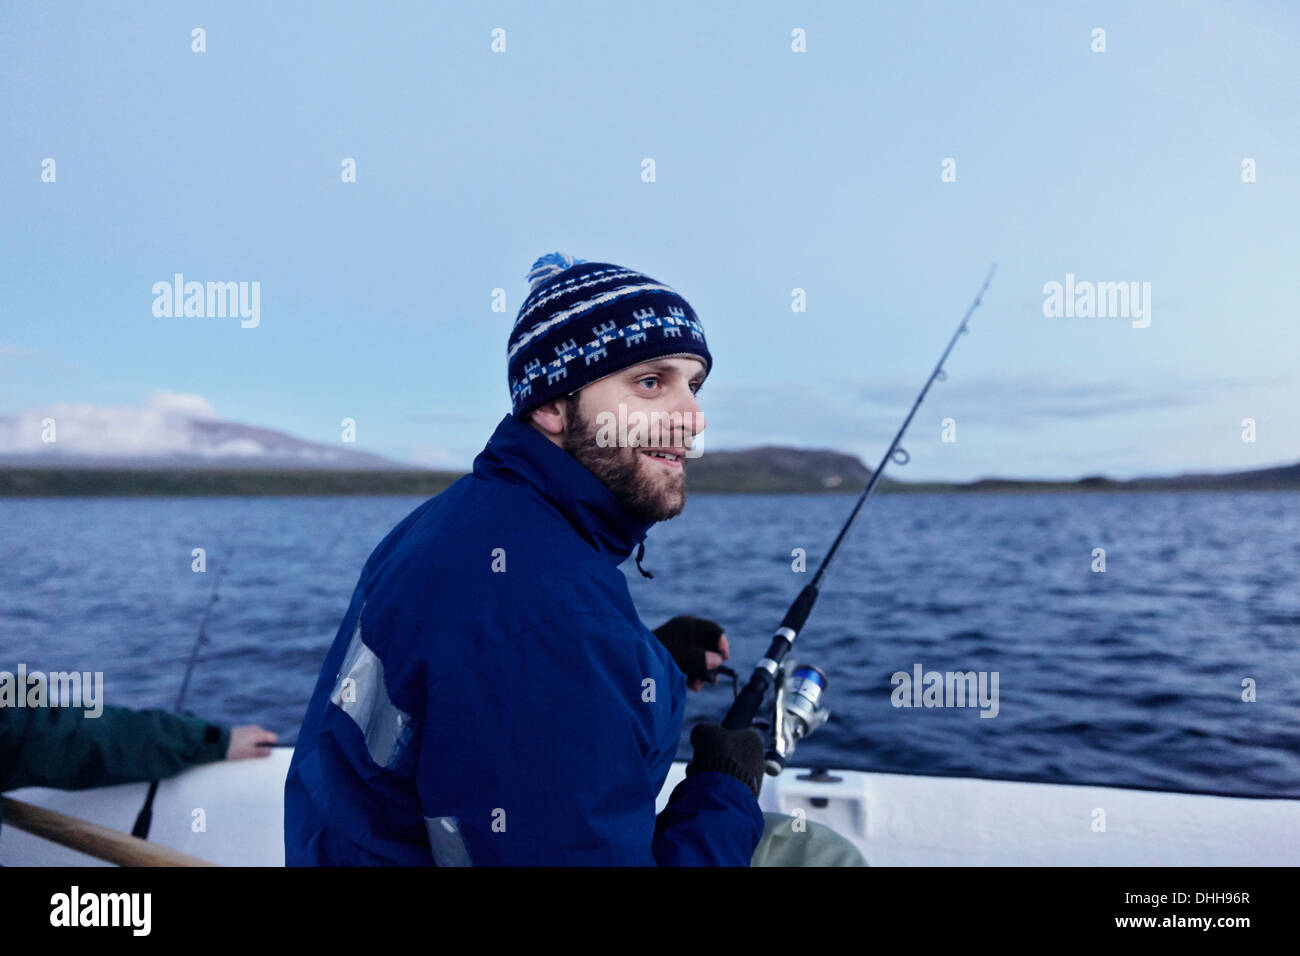 Men on fishing trip - Stock Image